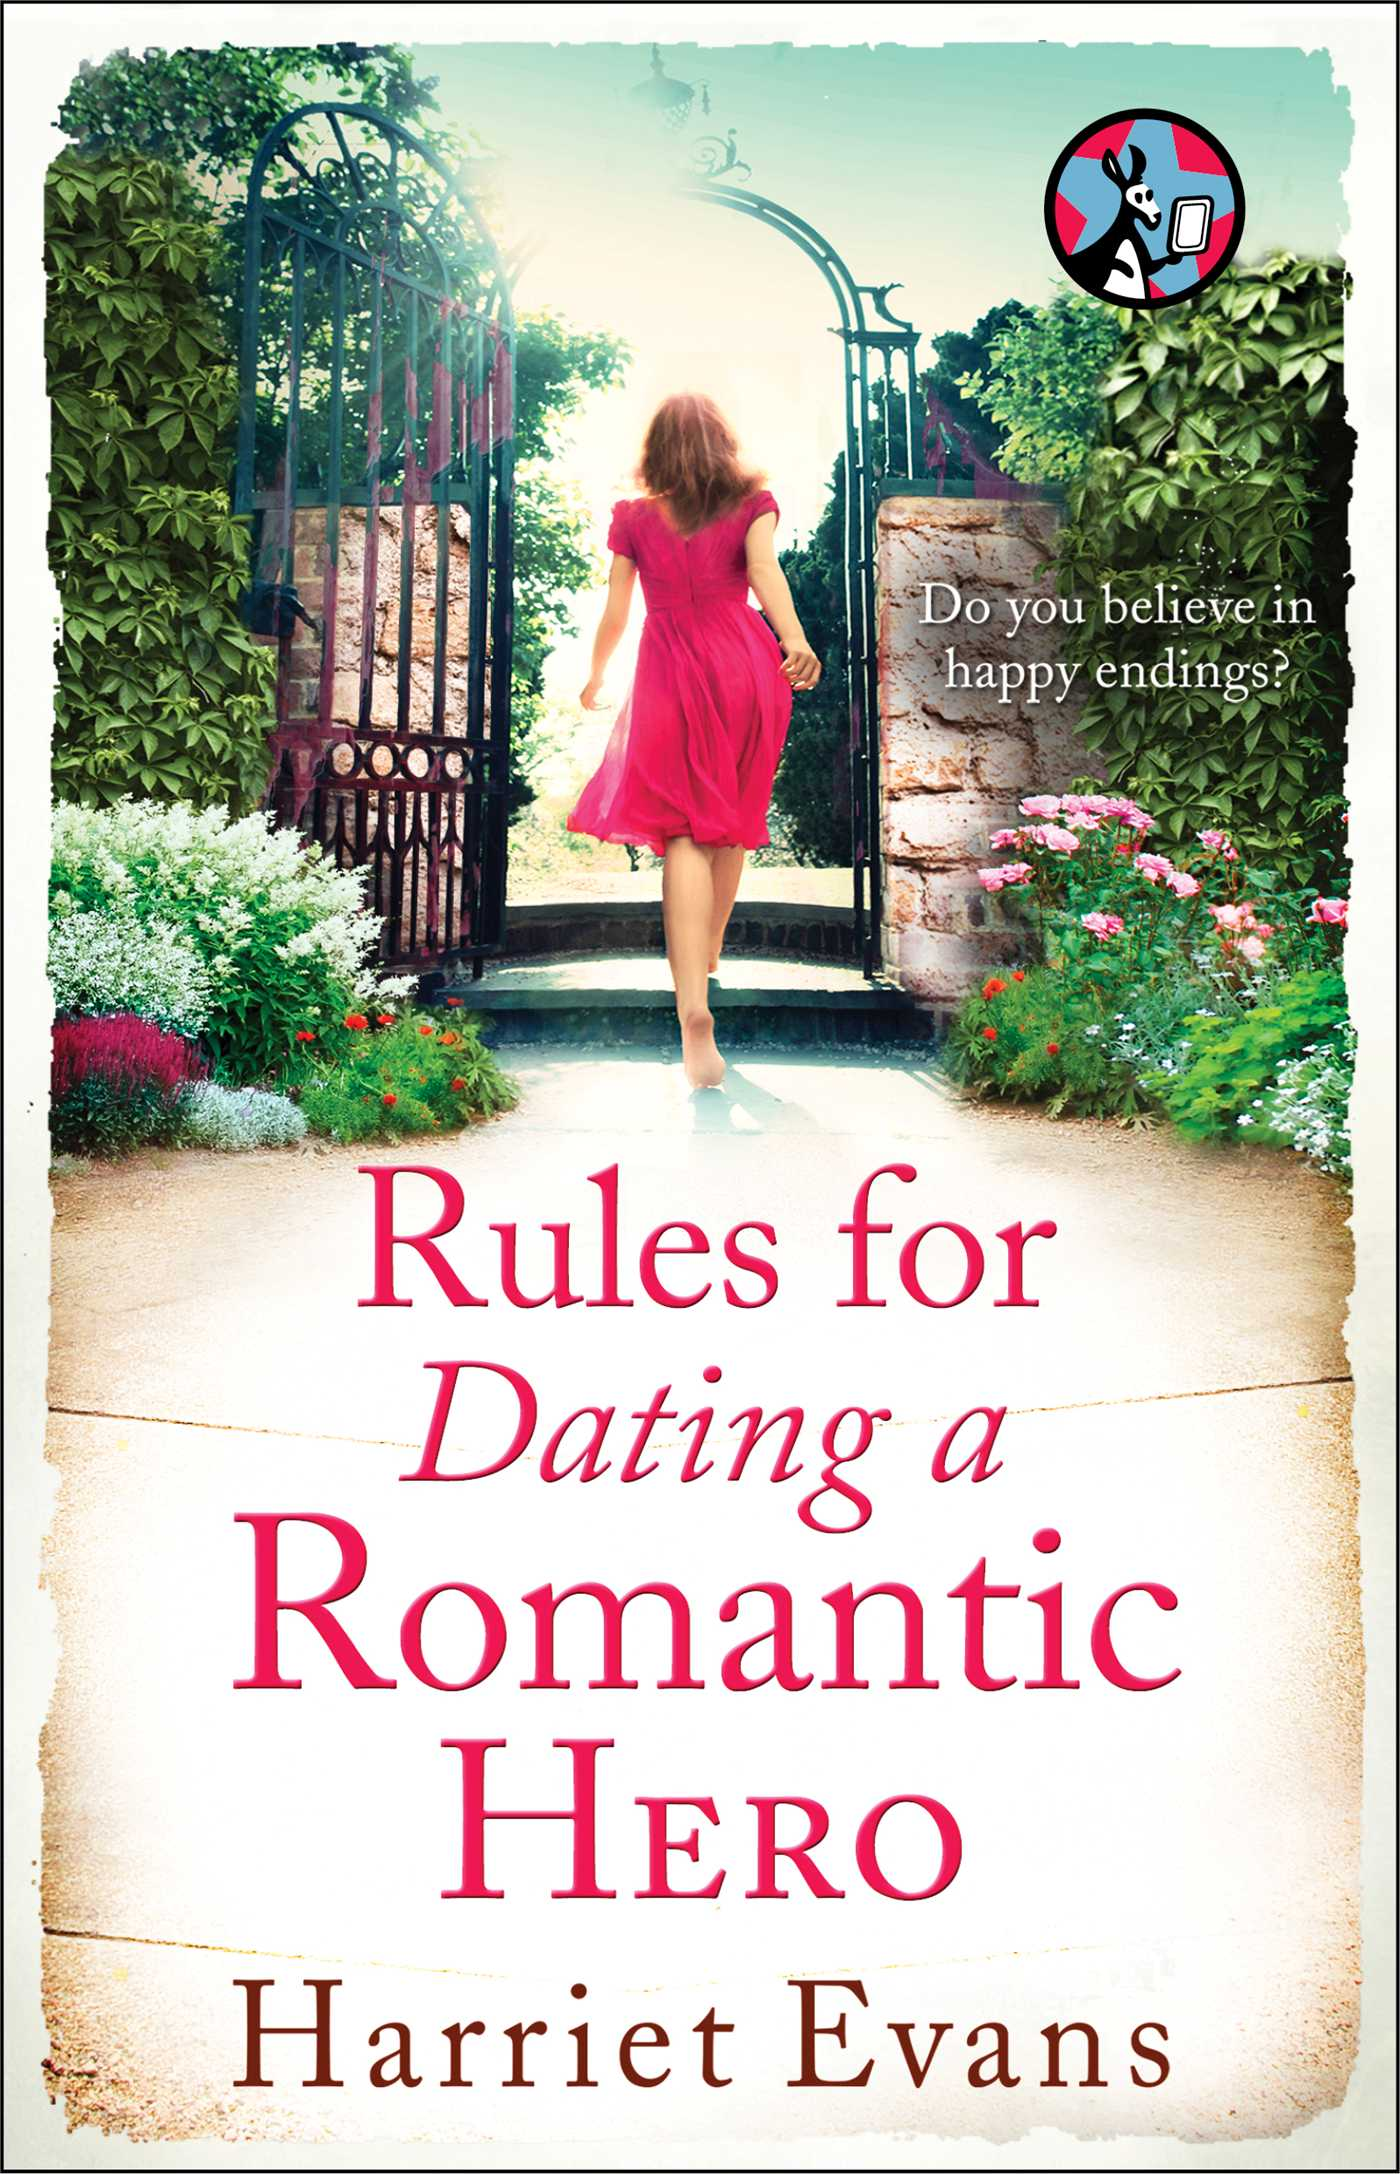 Rules for dating a romantic hero 9781476766188 hr